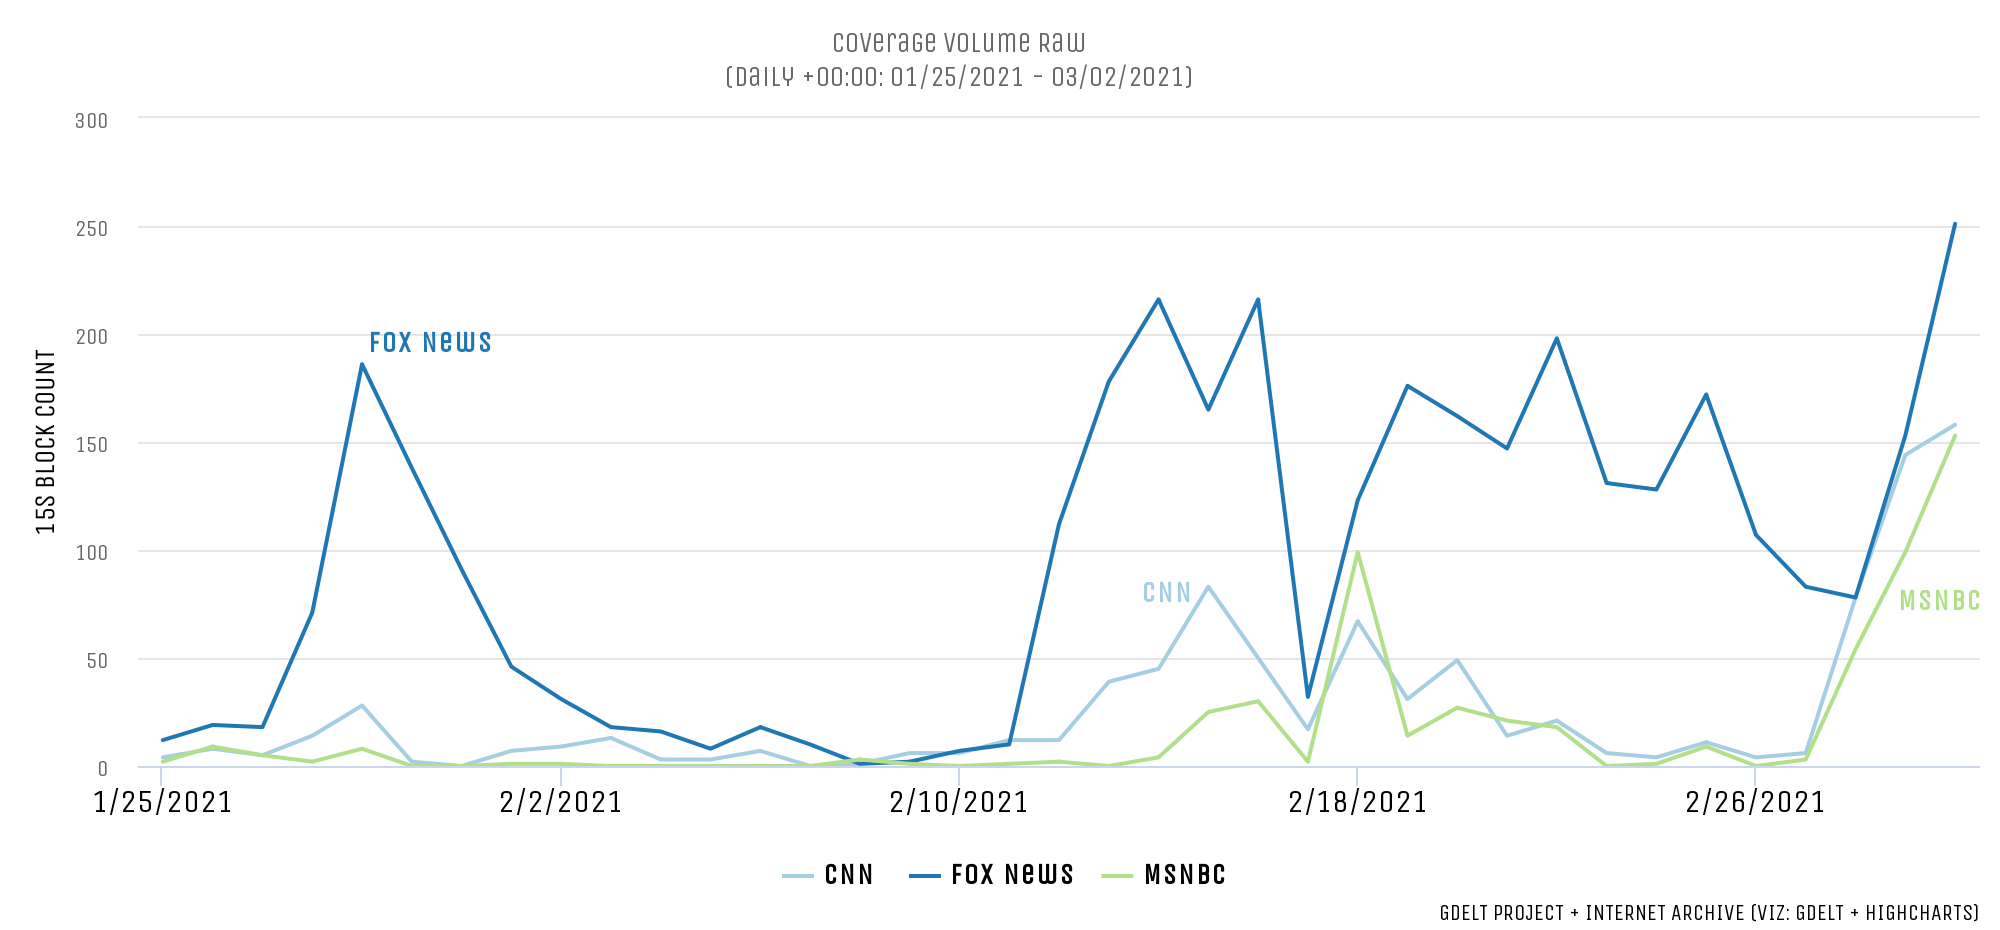 Real Clear Politics - Fox News Covers This Year's Cuomo Stories 2.2x More Than CNN And MSNBC...